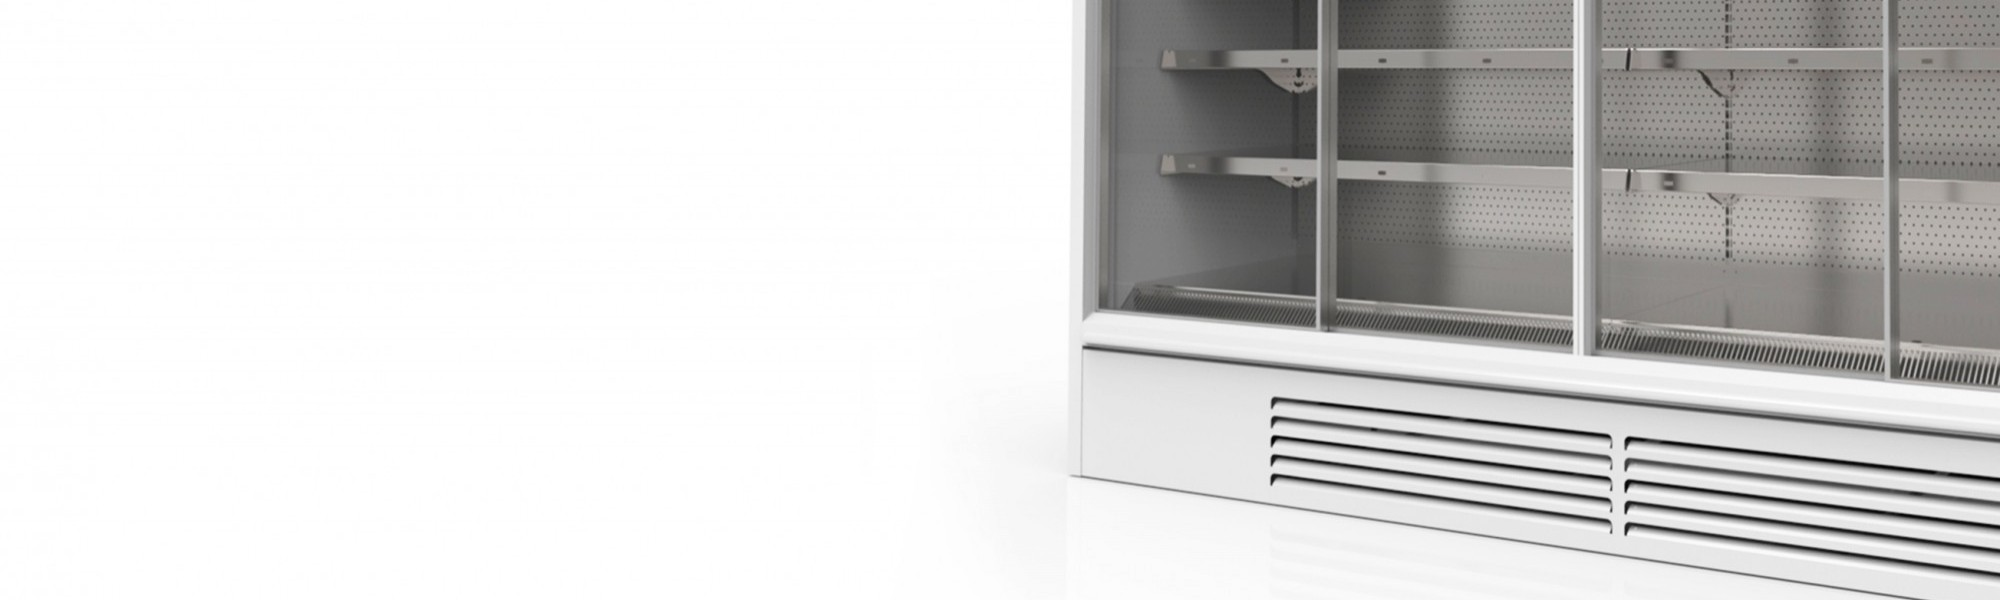 Eco Chicago & Chicago Integral cabinet Range